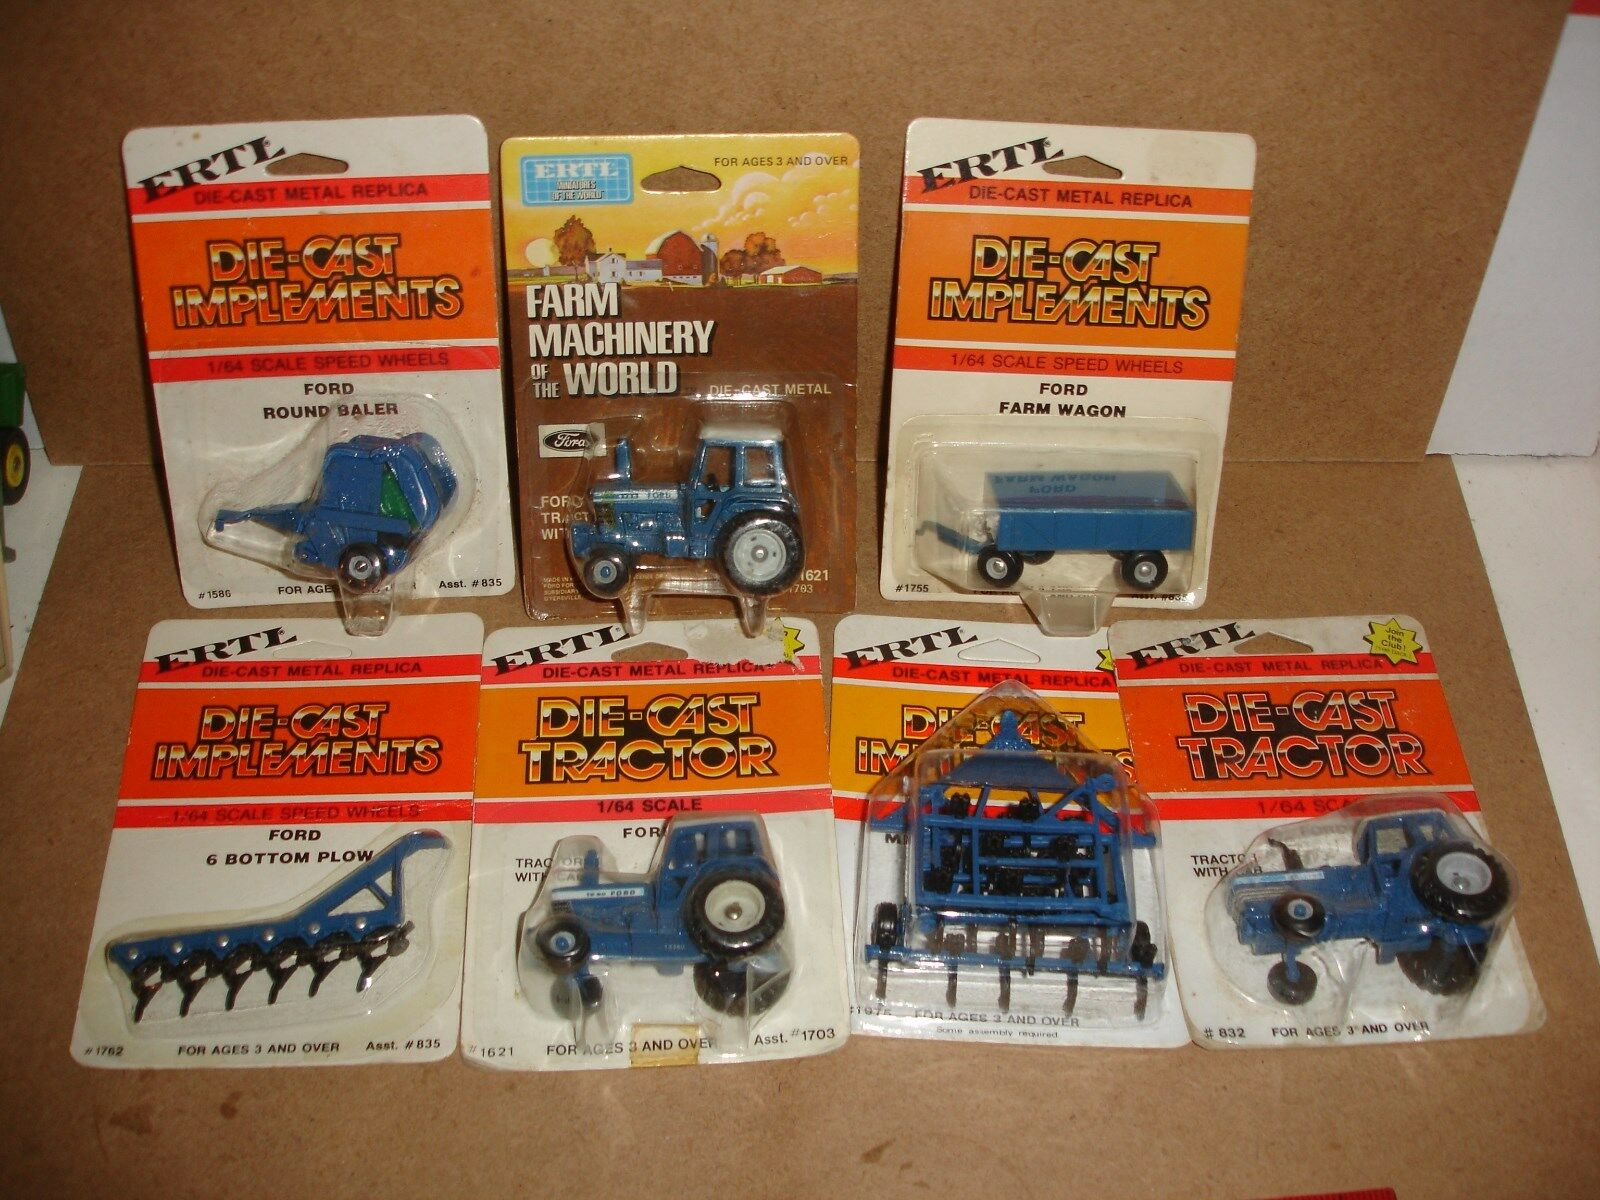 1 64 Ford Tractor & ImpleSiet Grouping - 7 pieces